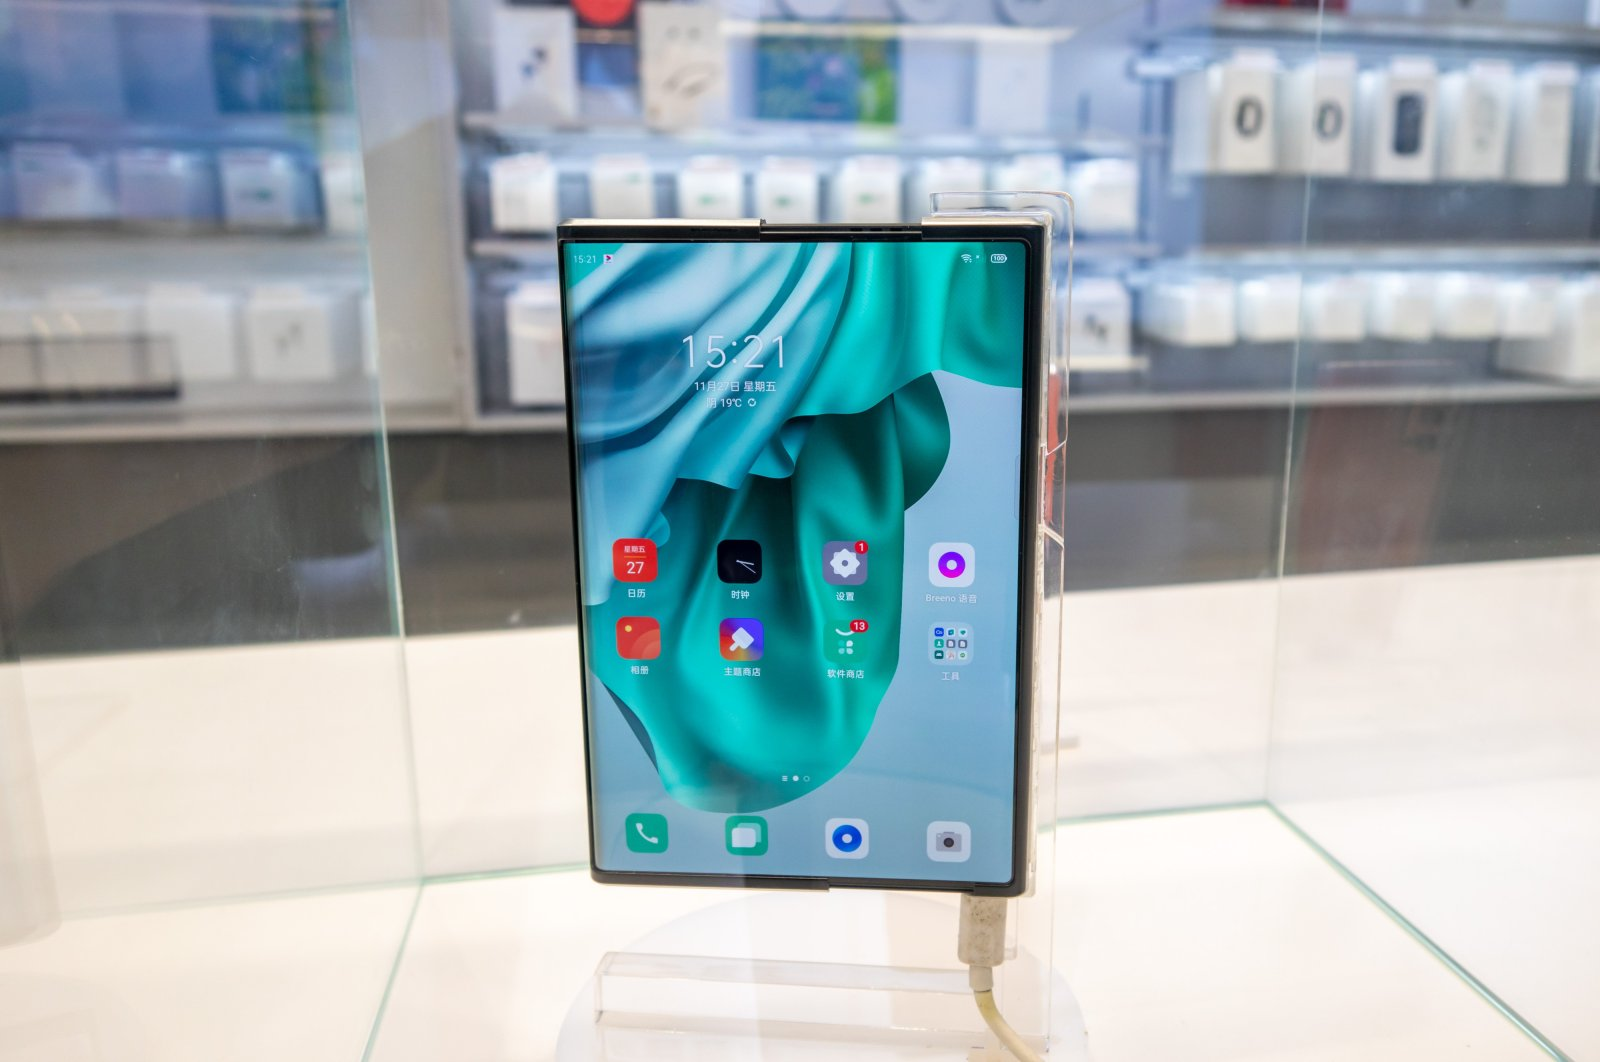 OPPO X 2021 scroll screen concept mobile phone is displayed at OPPO store on Nanjing East Road Pedestrian Street in Shanghai, China, Nov. 27, 2020. (Photo by Getty Images)